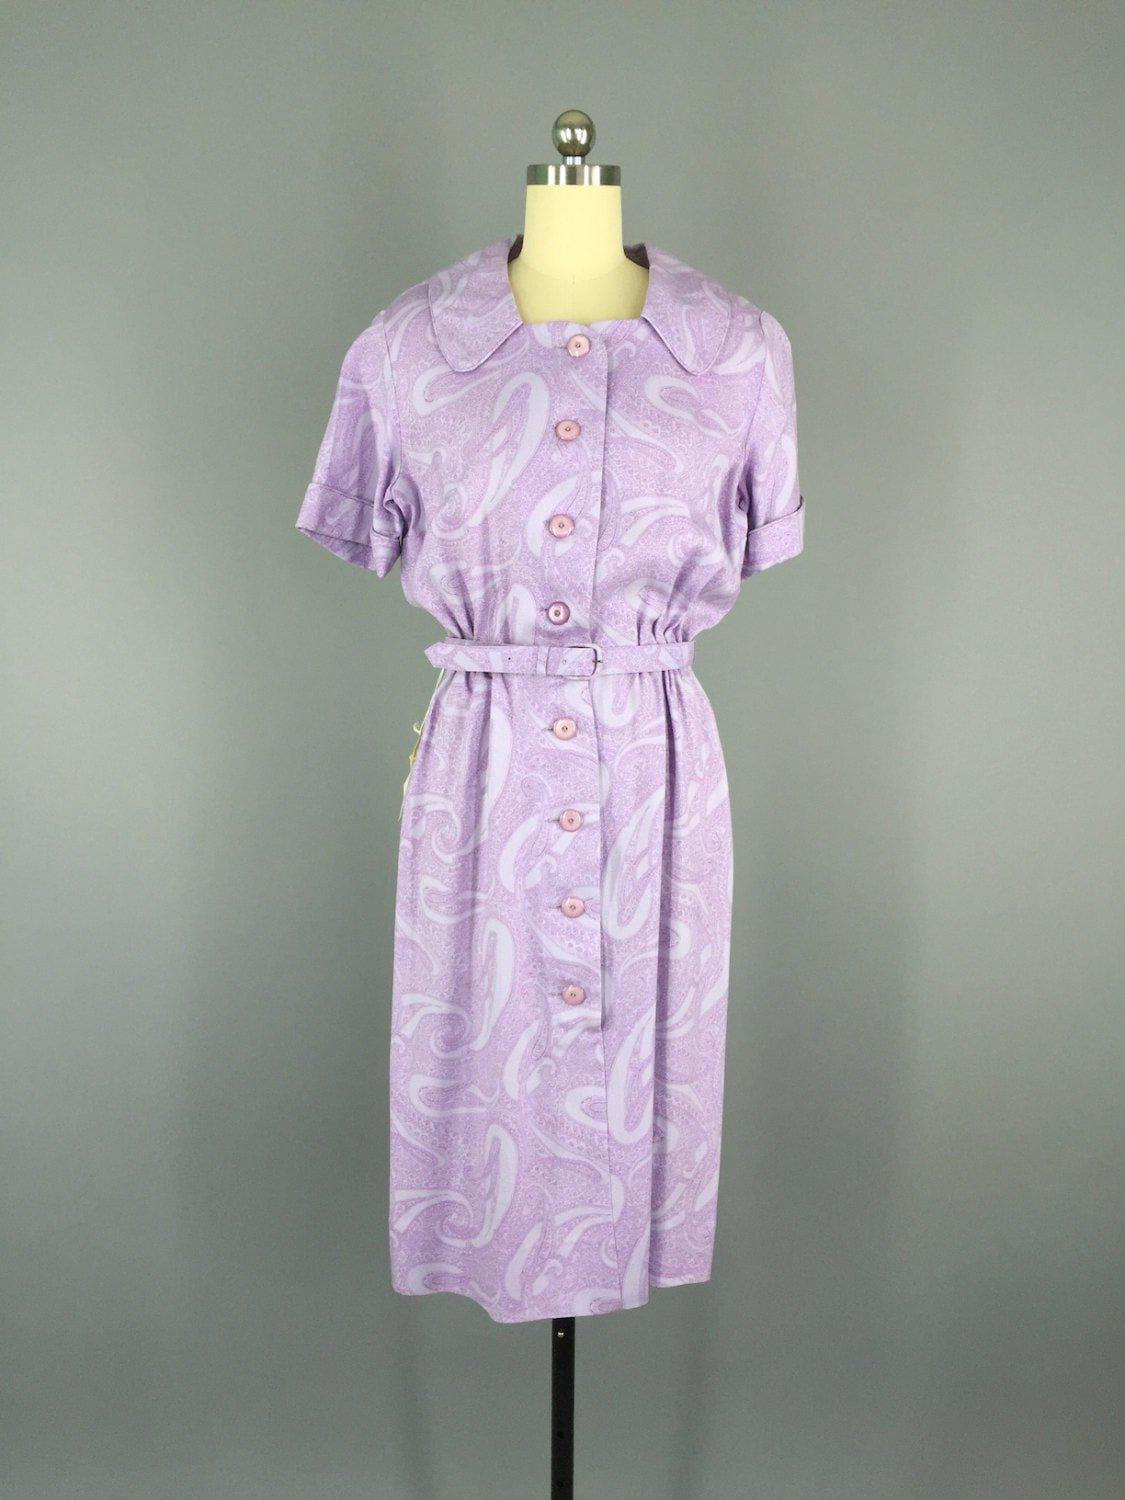 Vintage 1950s Nelly Don Day Dress Dress ThisBlueBird - Sale